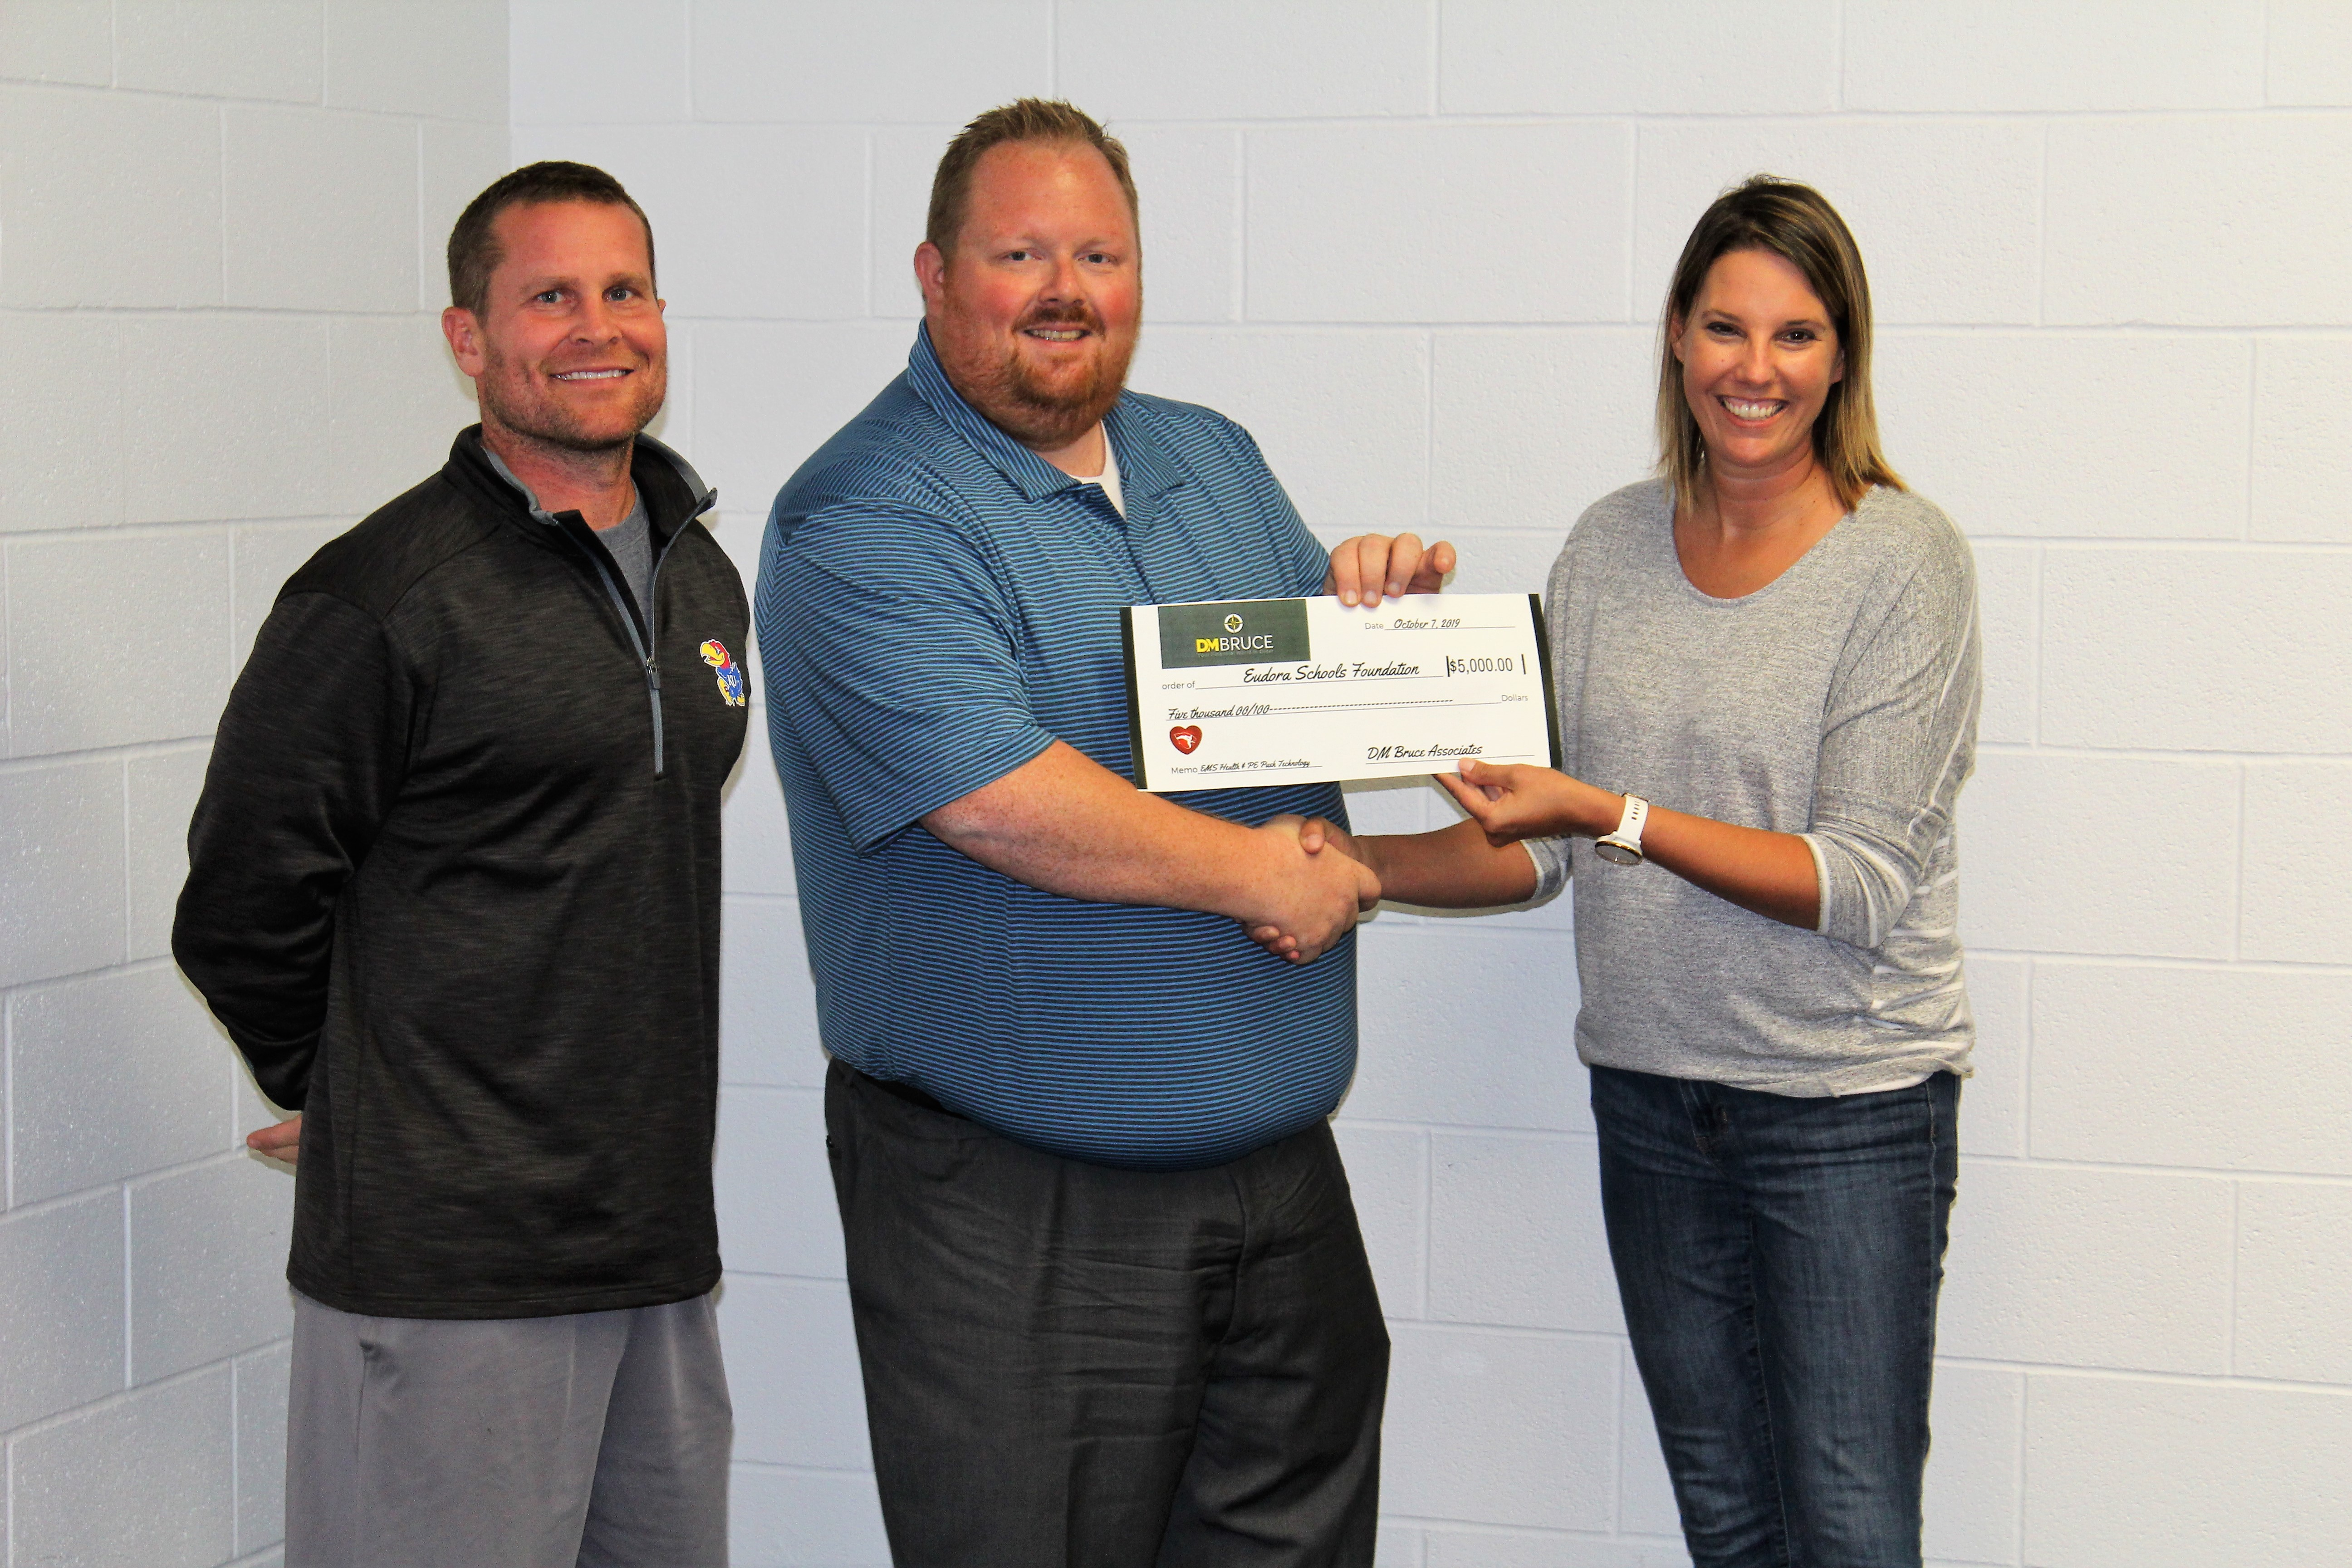 DM Bruce Associates Makes $5000 Donation to Eudora Schools Foundation for Velocity Training Technology at Eudora Middle School